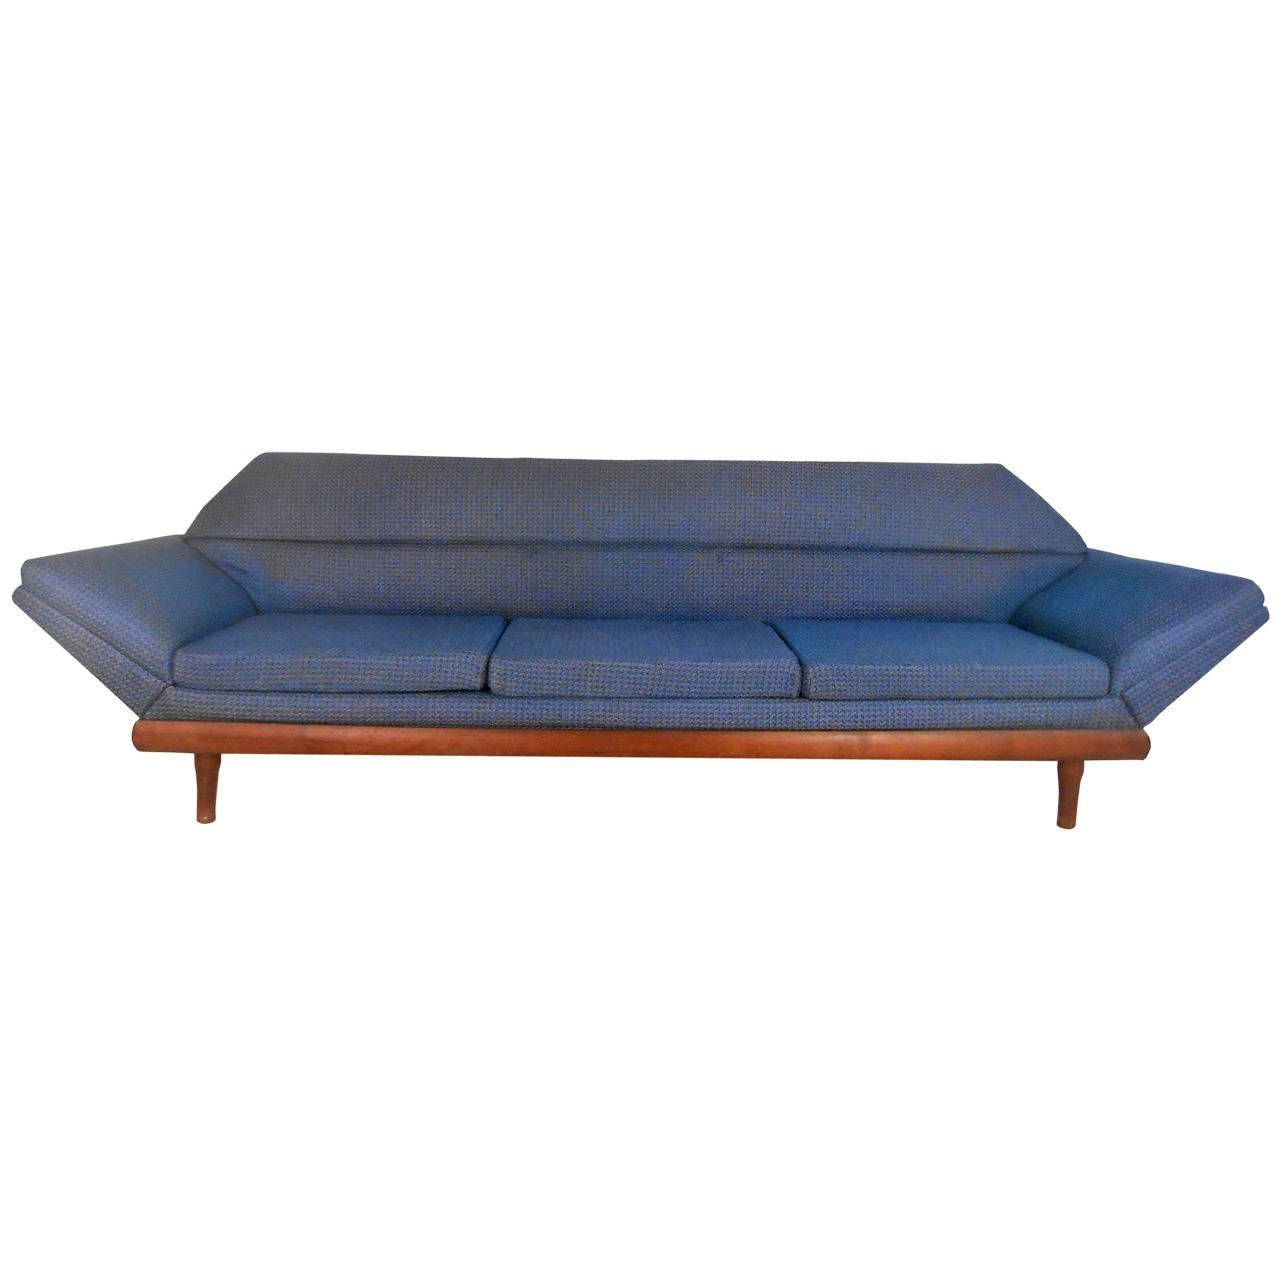 Century Furniture Sofa Quality Hamiltons Gallery Mid Modern Adrian Pearsall Style